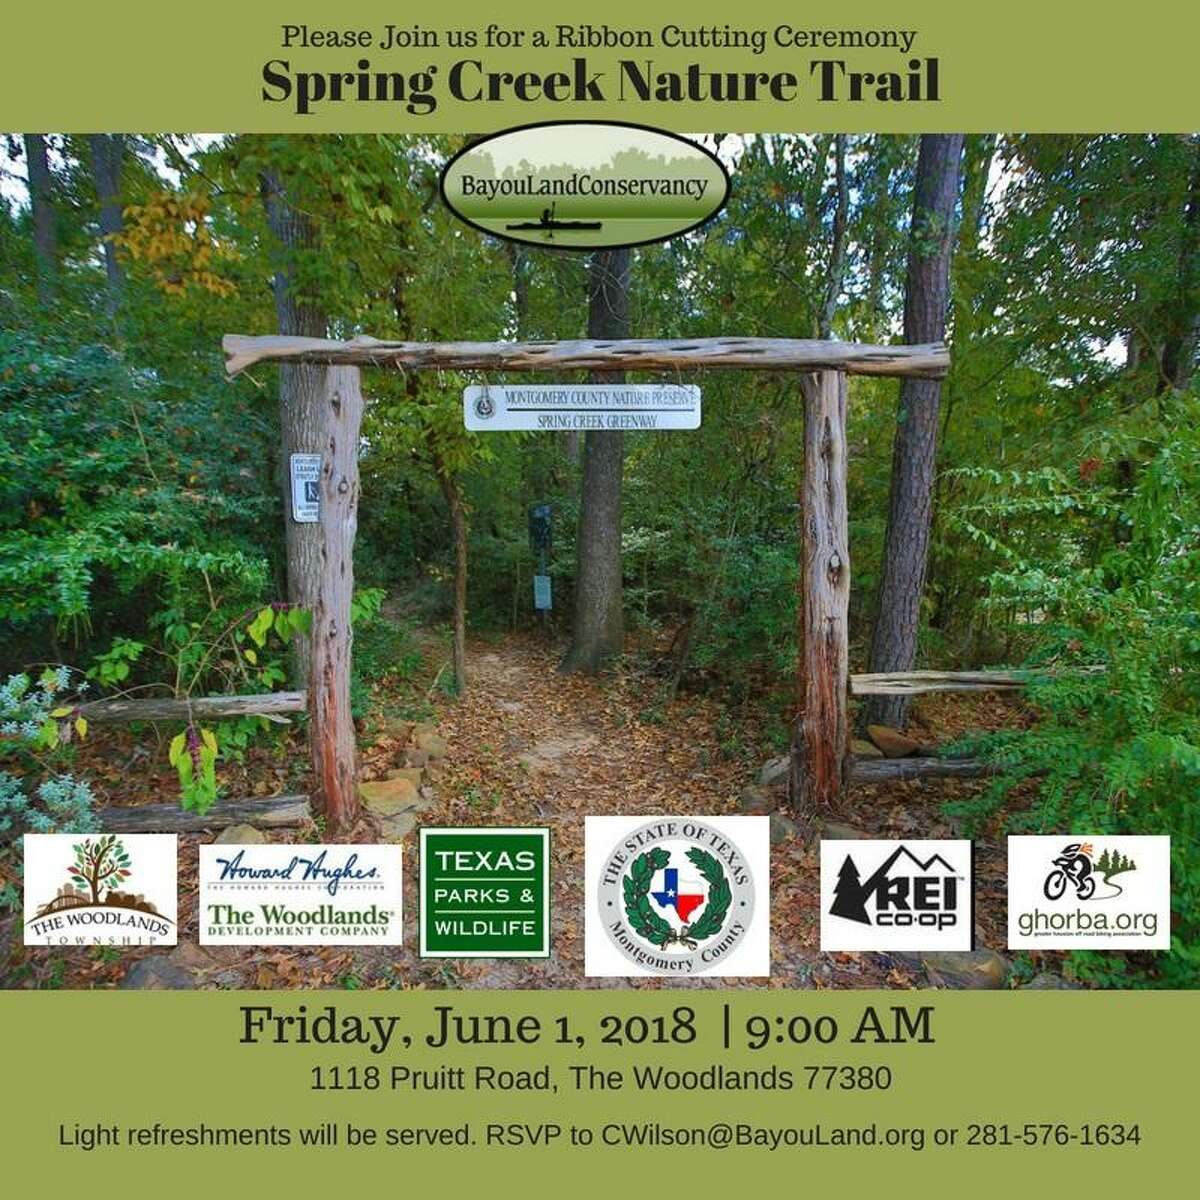 Officials with the Bayou Land Conservancy (BLC) announced that there will be a ribbon cutting ceremony for the 13-mile Spring Creek Nature Trail at 9 a.m., Friday, June 1, at the Montgomery County Preserve, located near 1118 Pruitt Road, The Woodlands.